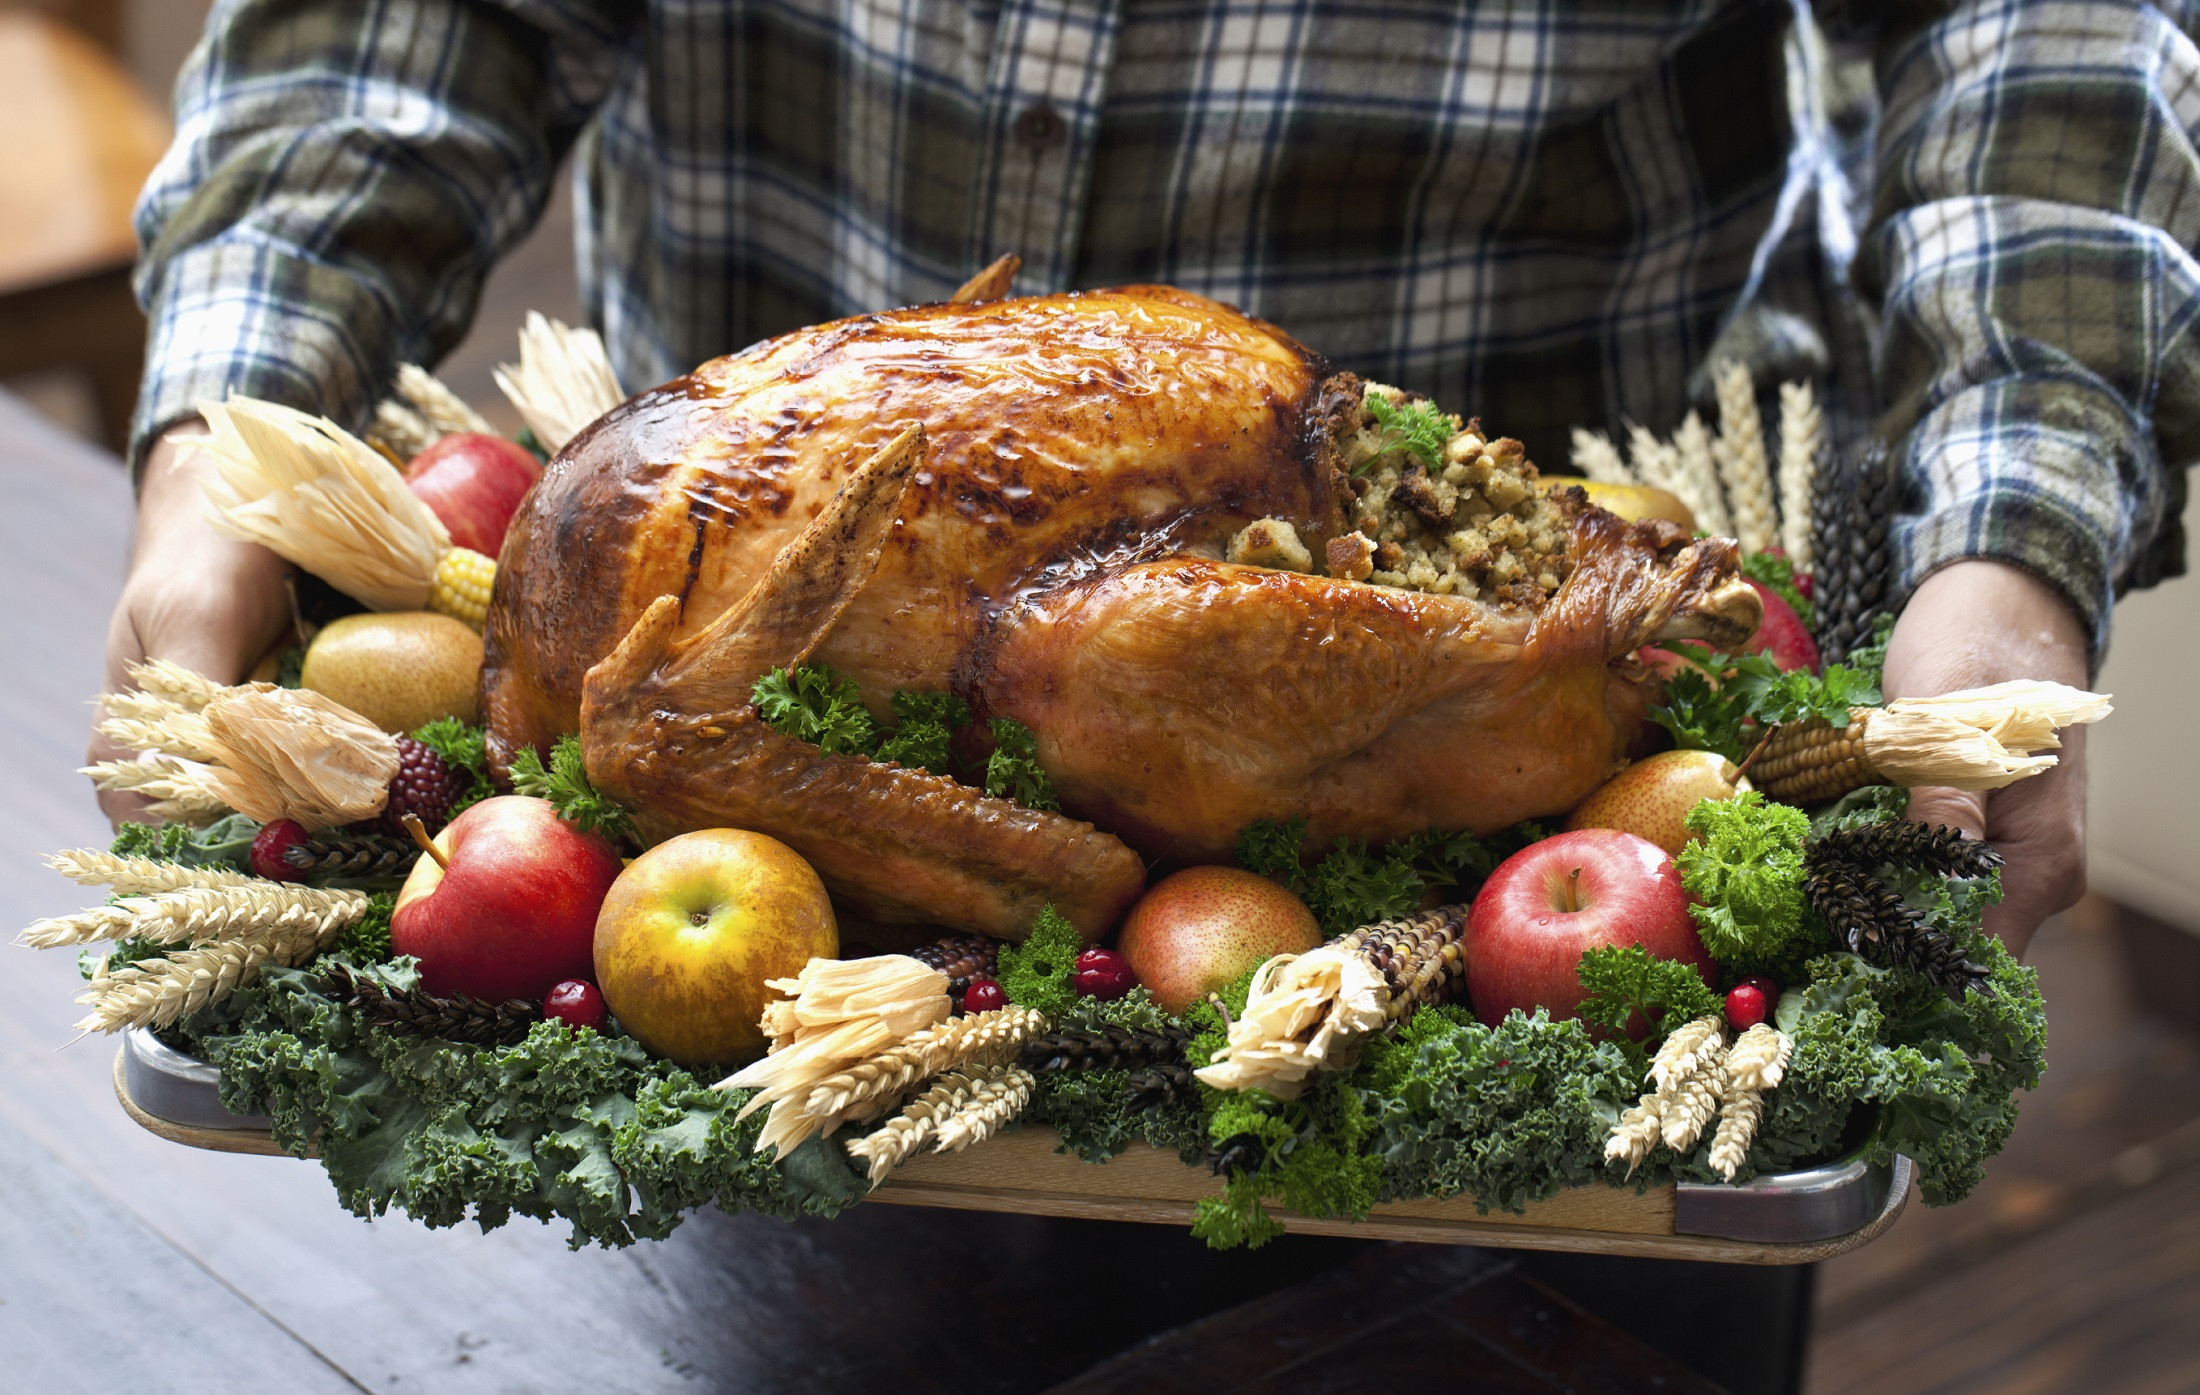 Craig'S Thanksgiving Dinner In A Can  The Average Cost of a Thanksgiving Grocery List Is $69 01